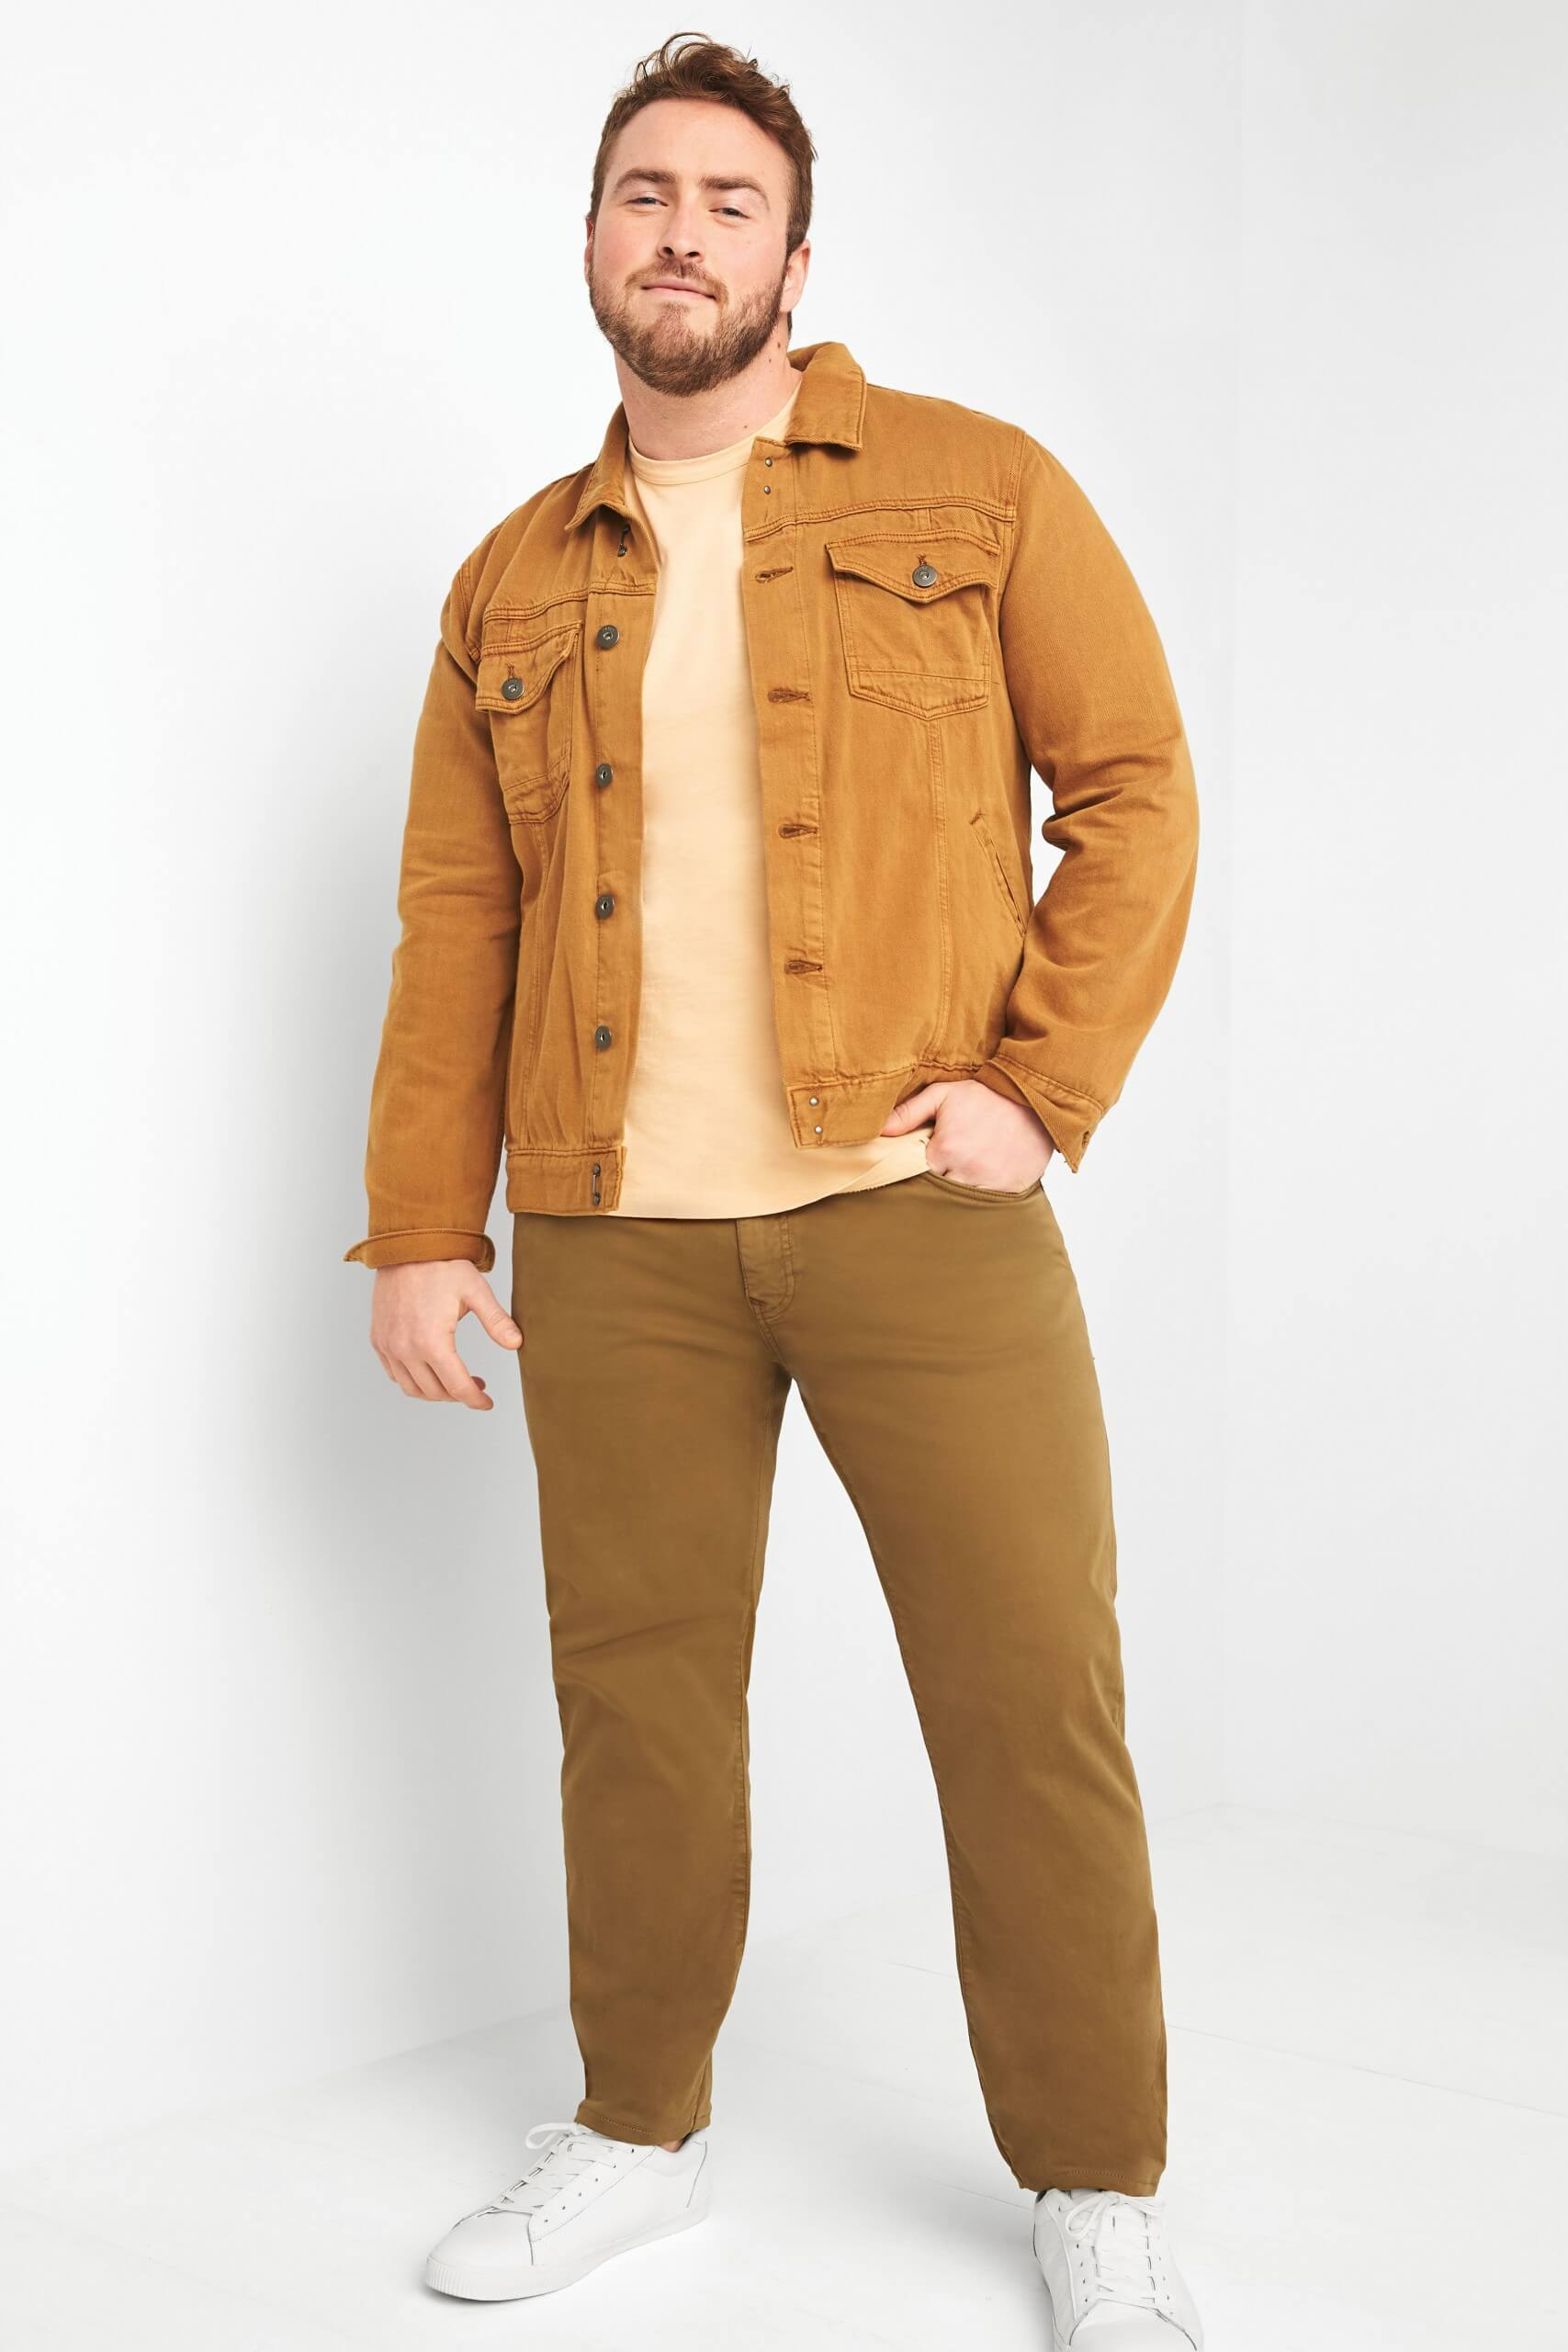 Stitch Fix Men's model wearing tan denim jacket over yellow t-shirt with brown pants and white sneakers.